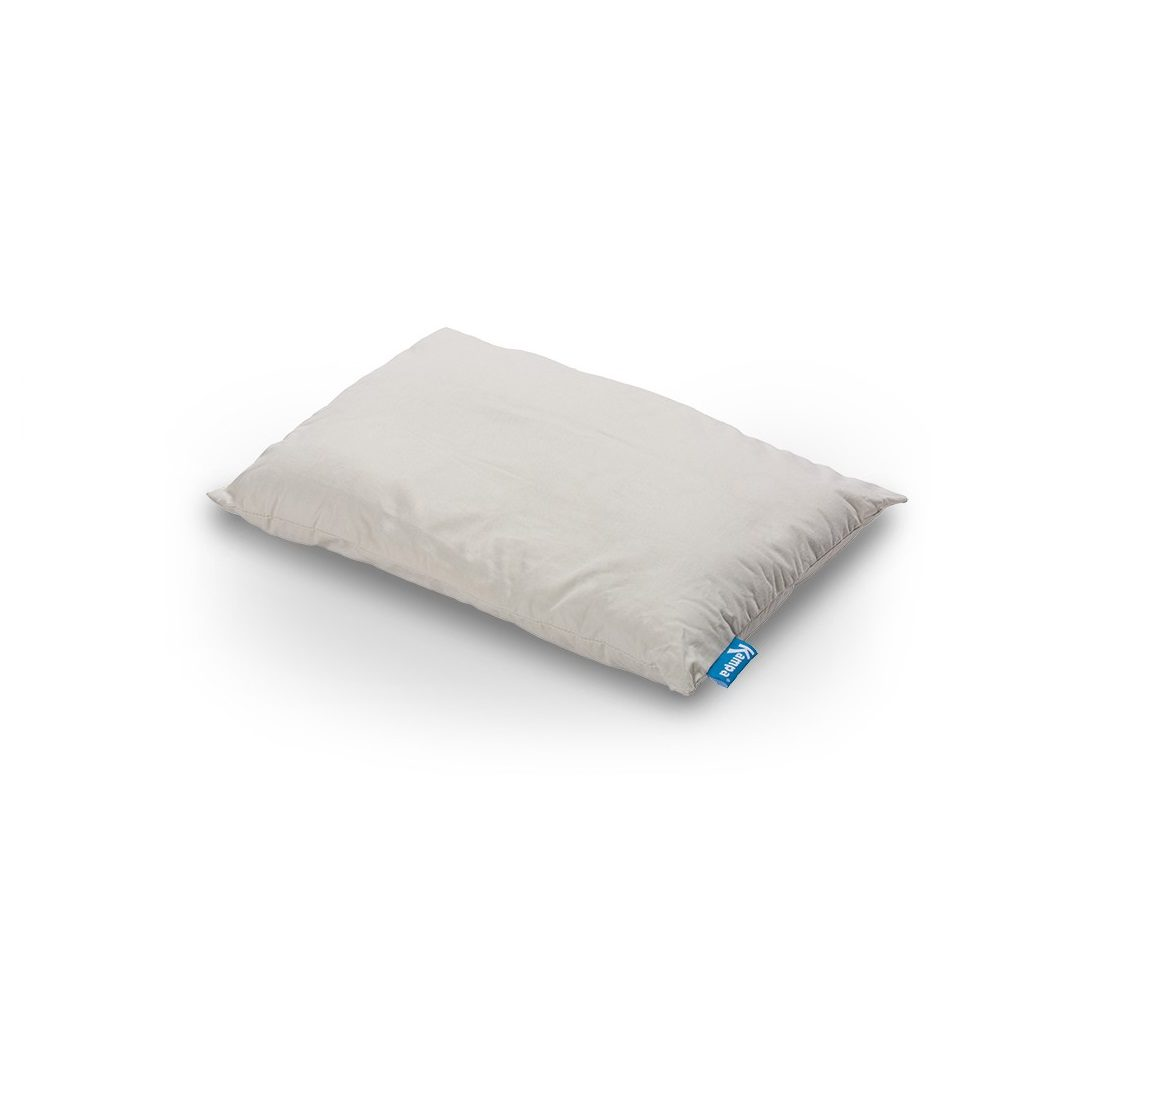 Sb0020 Kip Pillow 0